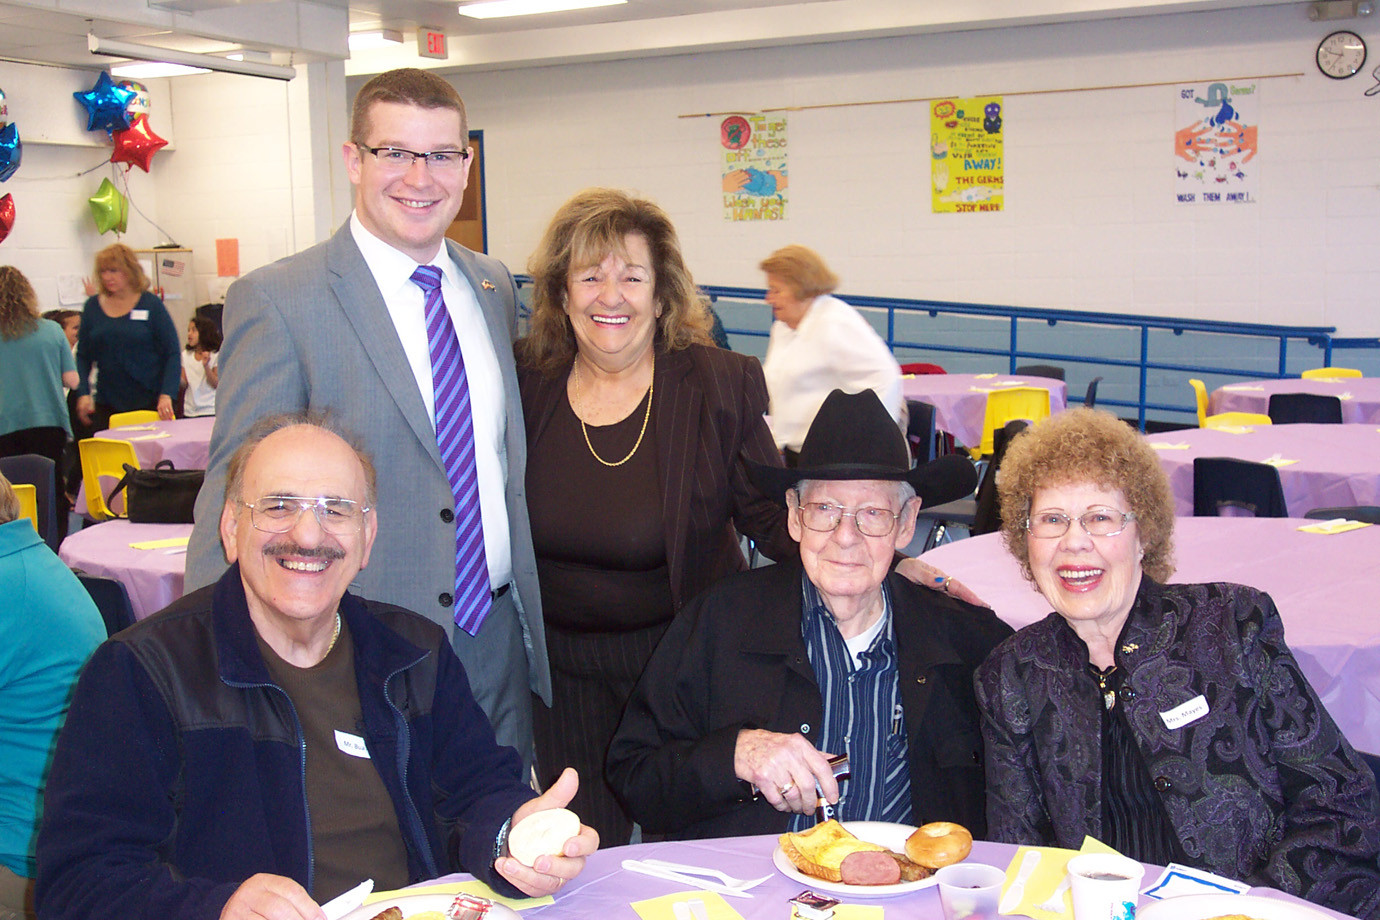 Island Park Schools Board of Trustee members Matthew Paccione and Nina Hargrove helped served breakfast to the seniors. They are pictured here with (l to r) Frank Bua, Maurice Mayes, and Nora Mayes.